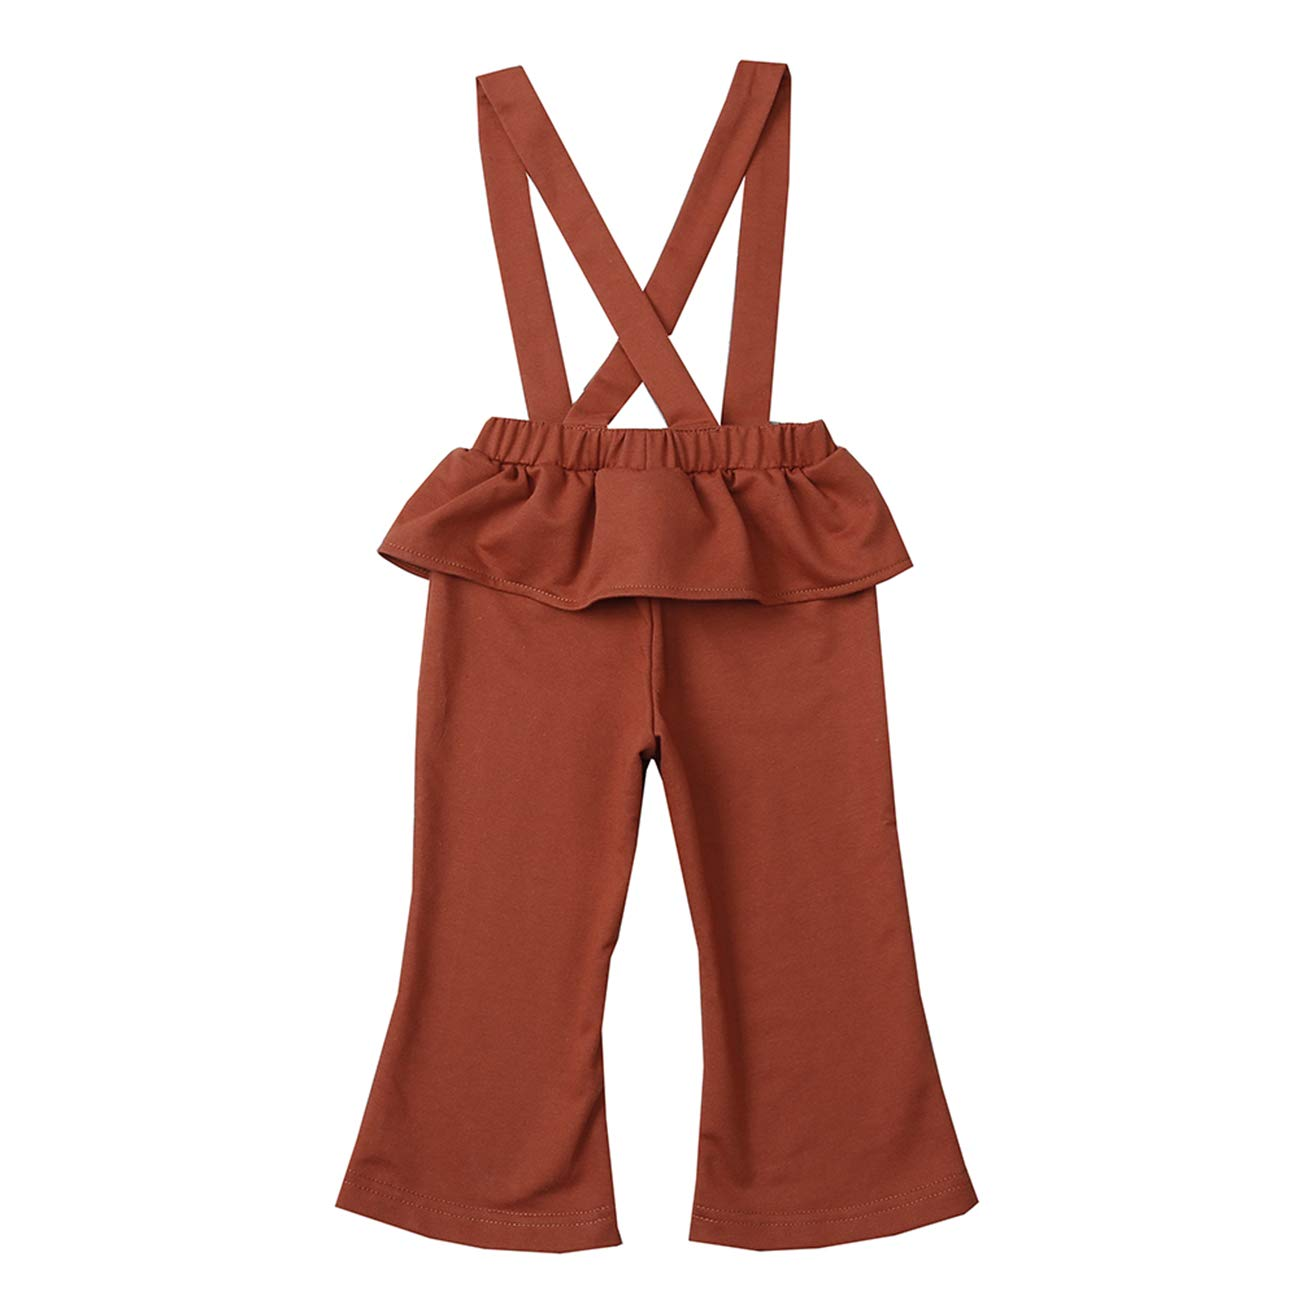 AIKSSOO Toddlers Girls Casual Pants Ruffle Waist Suspender Overalls Bell Bottoms